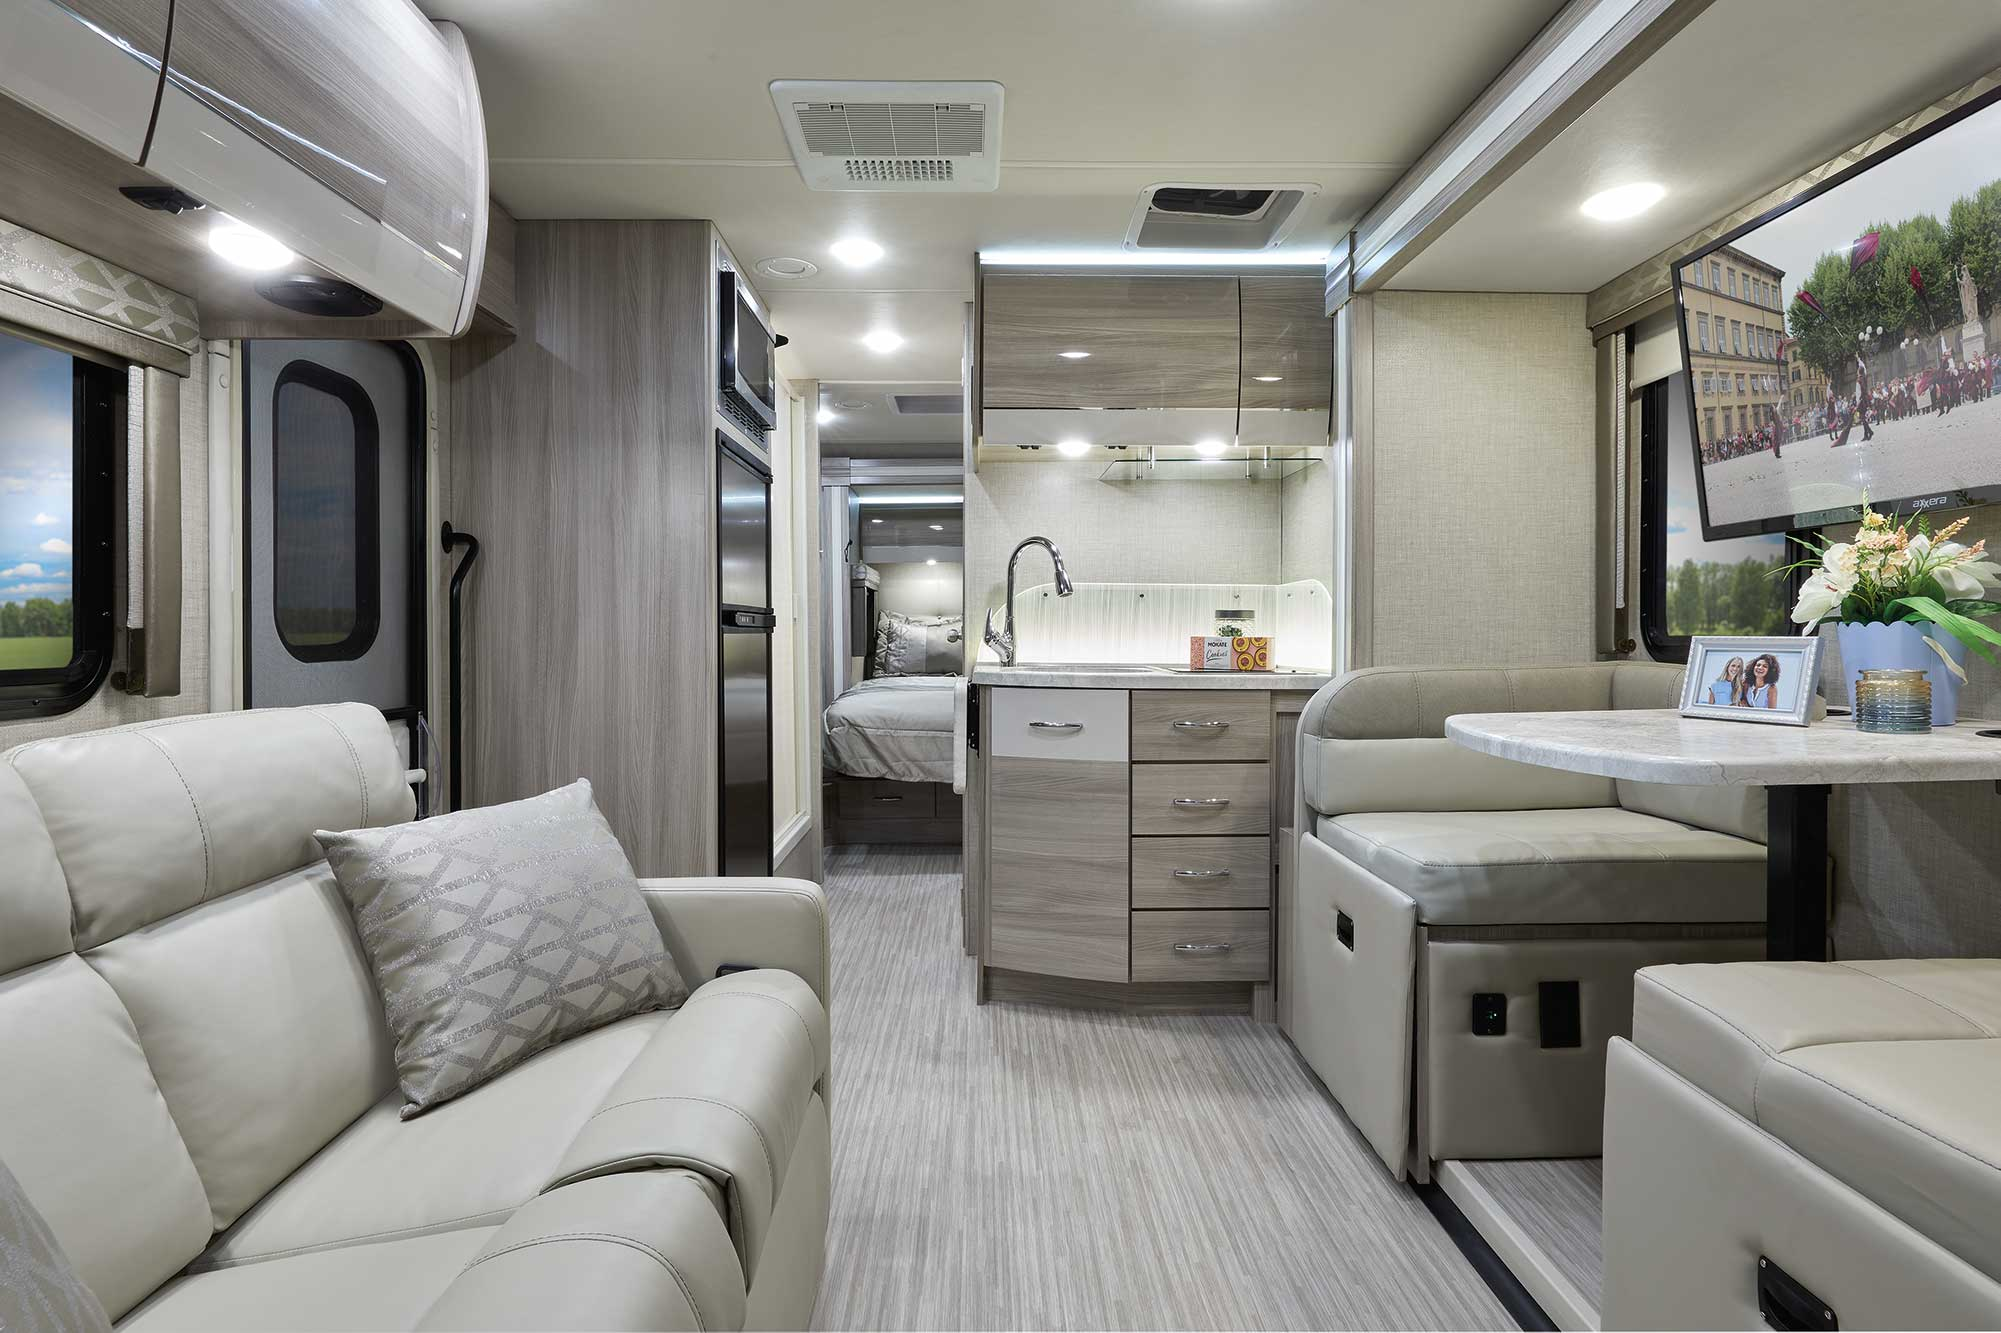 Delano Mercedes Sprinter RV Interior